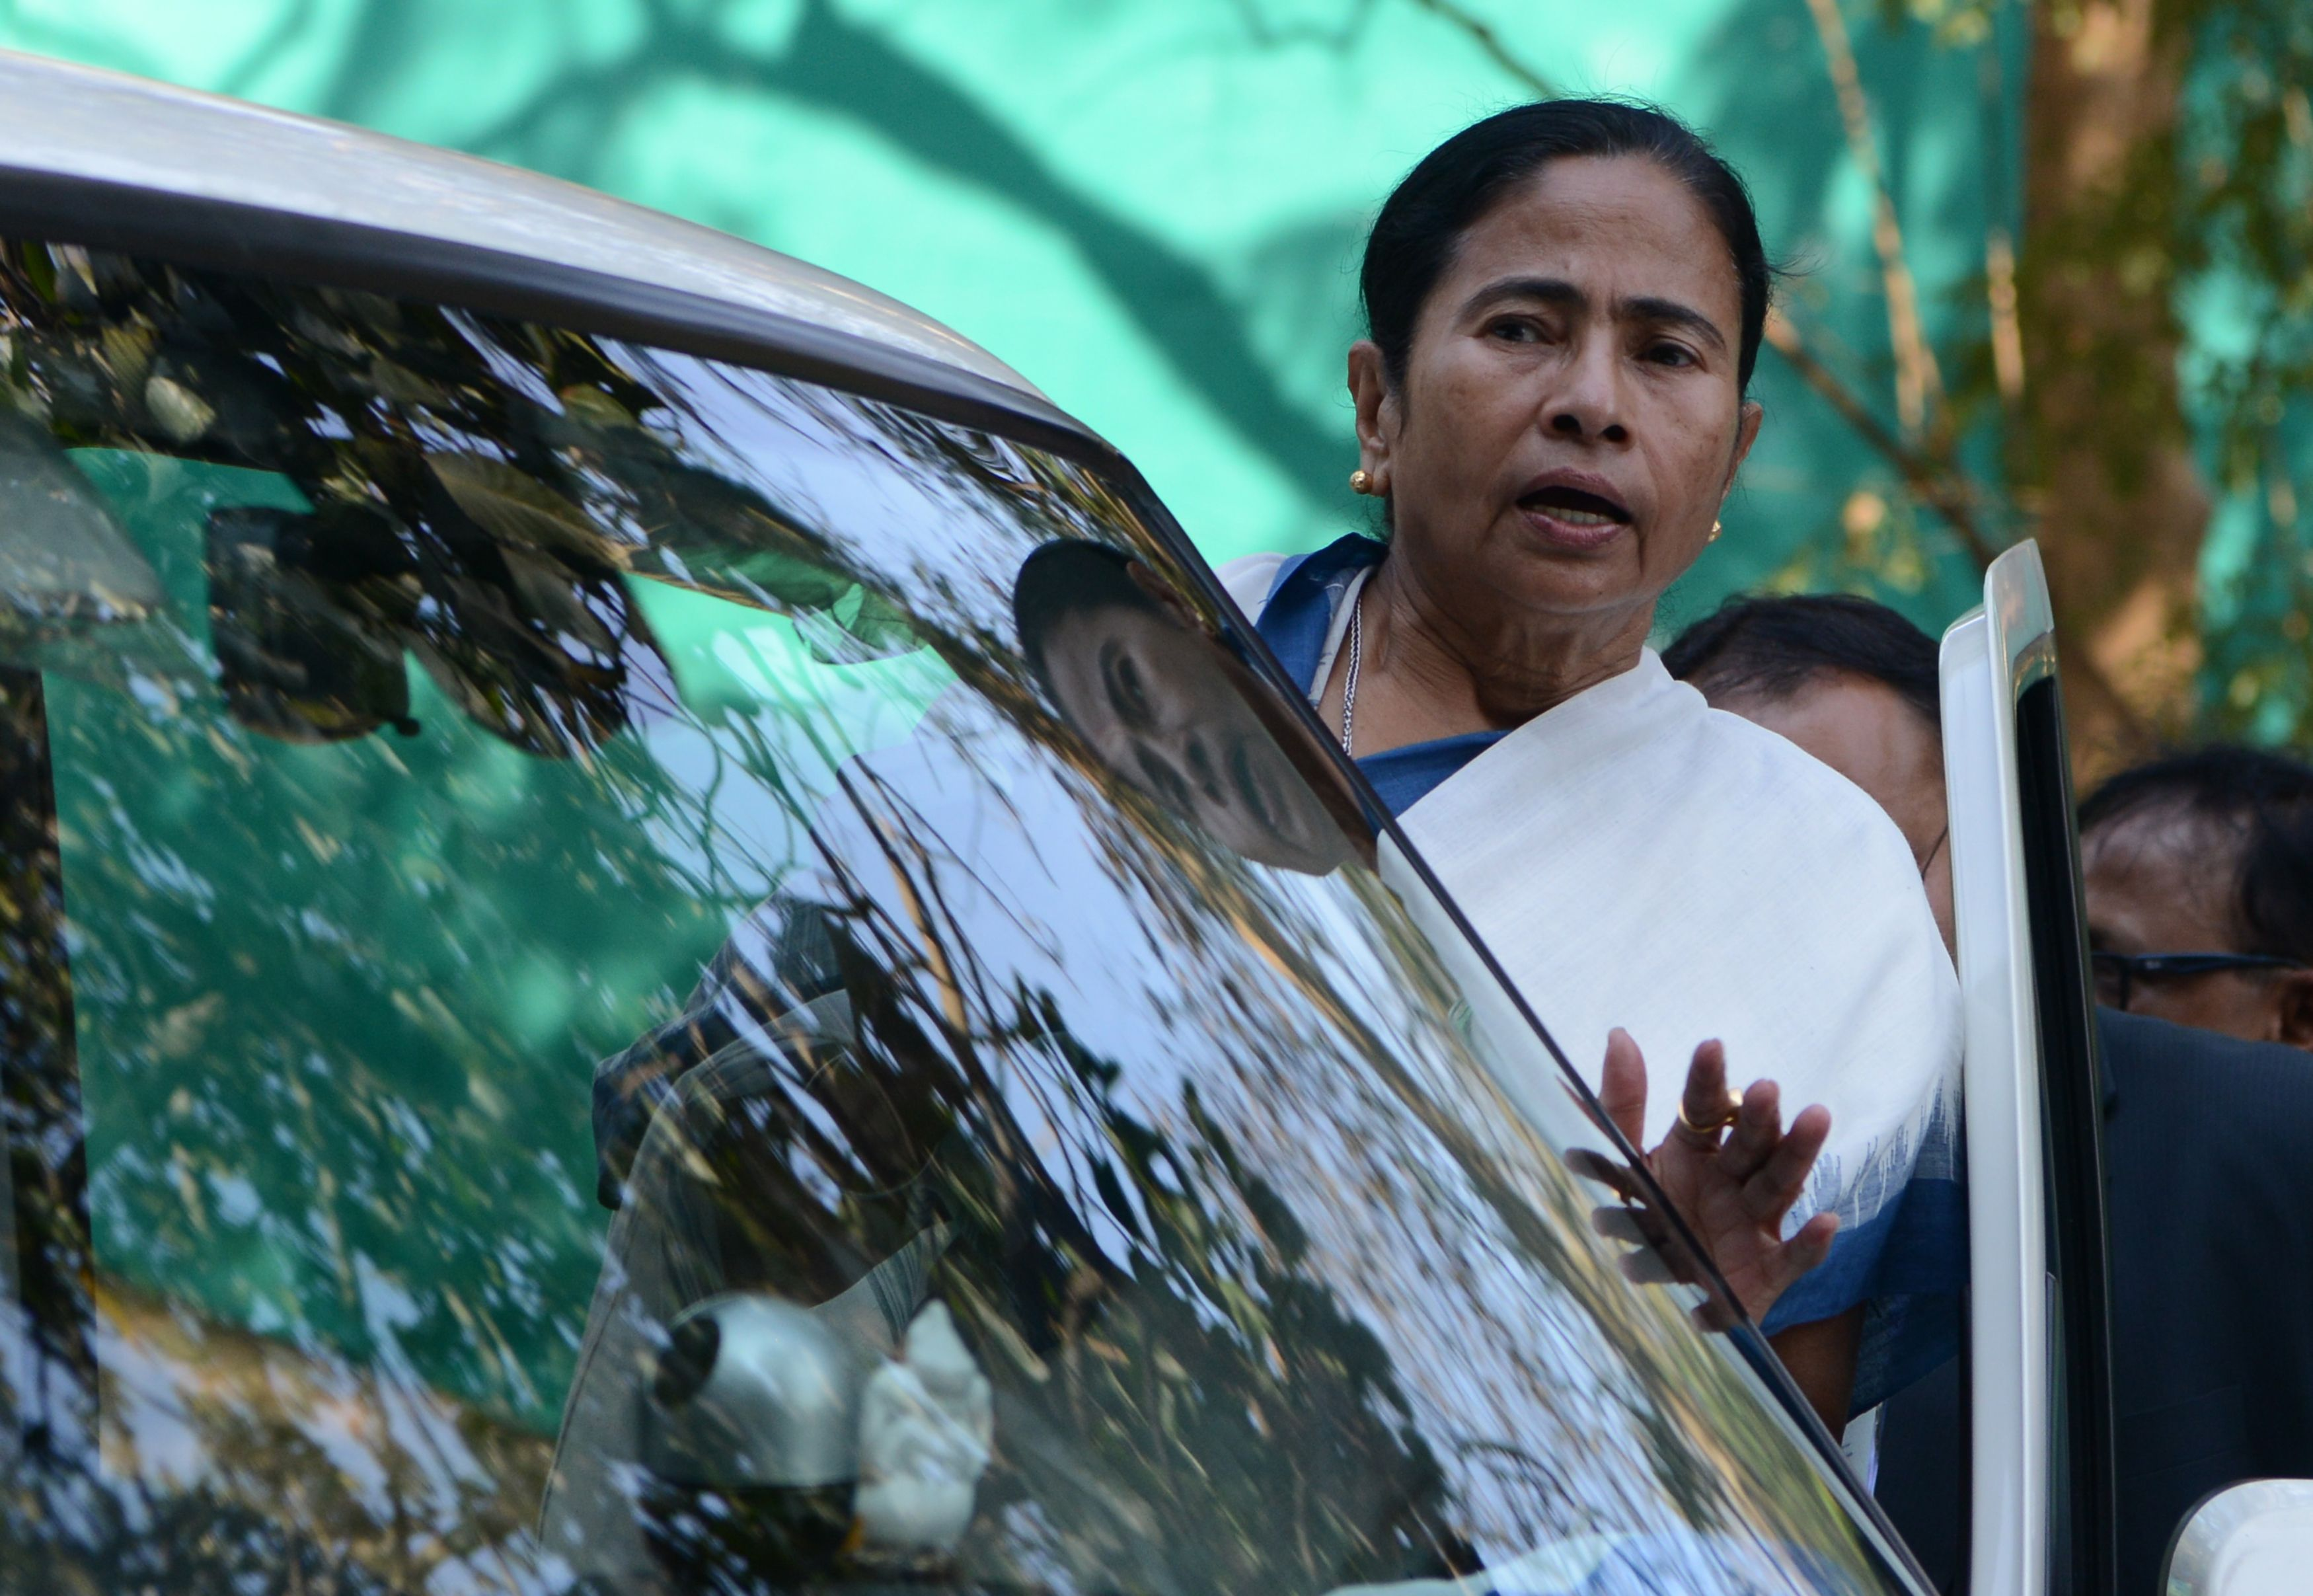 Will agitate against mamata banerjee for attacking our workers bjp the indian express - Also On Huffpost